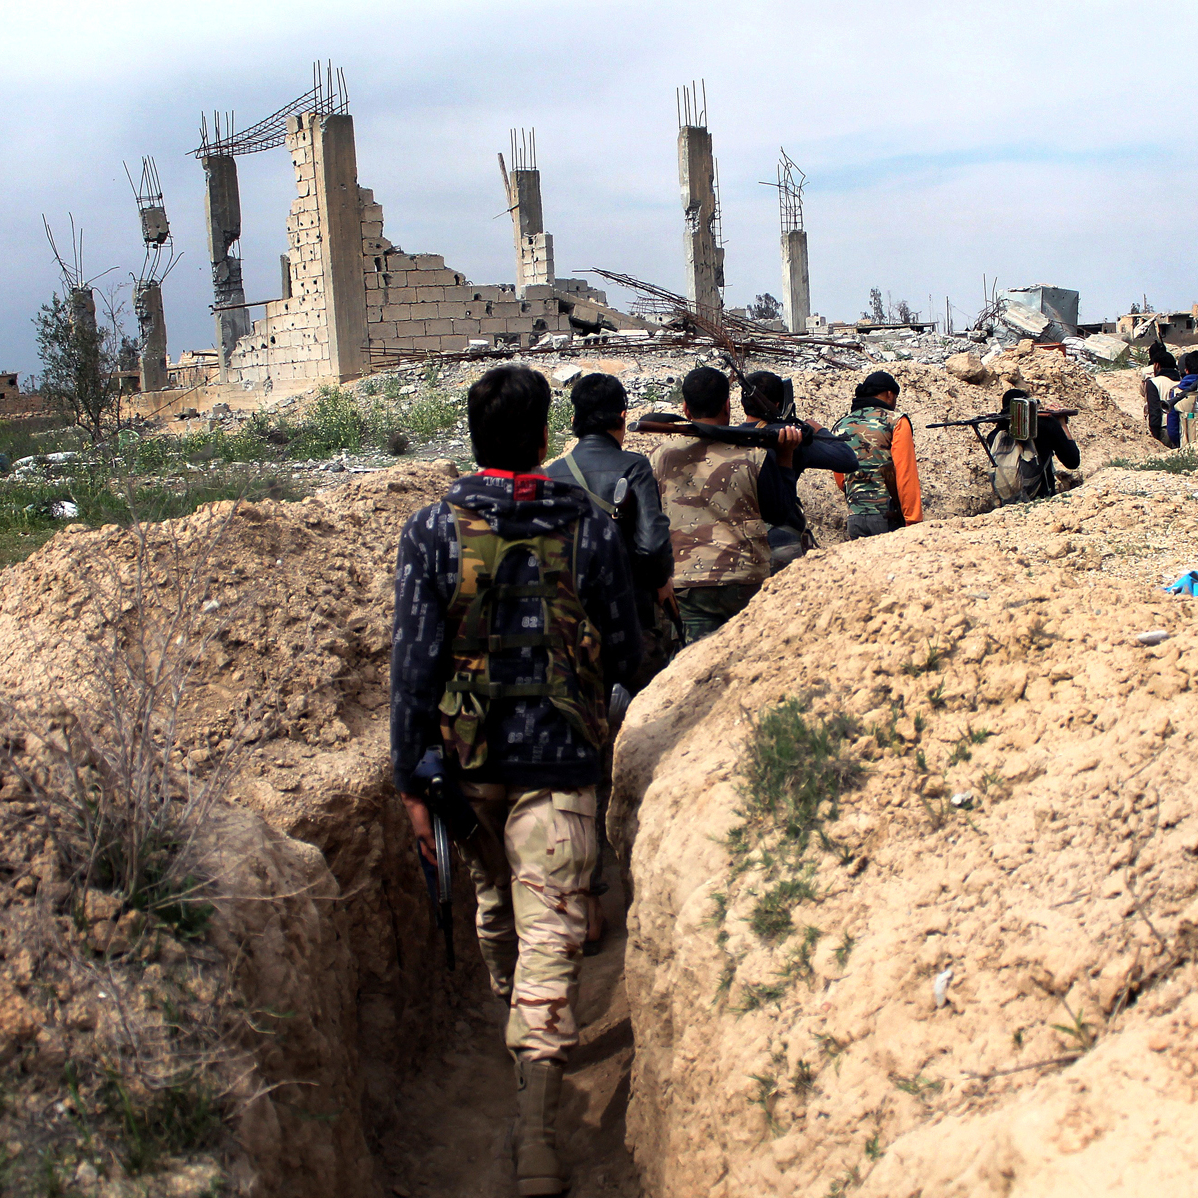 Rebel fighters carry their weapons along a trench in the northeastern city of Deir Ezzor on March 24. The CIA is stepping up training and military assistance to moderate rebels, according to U.S. sources.